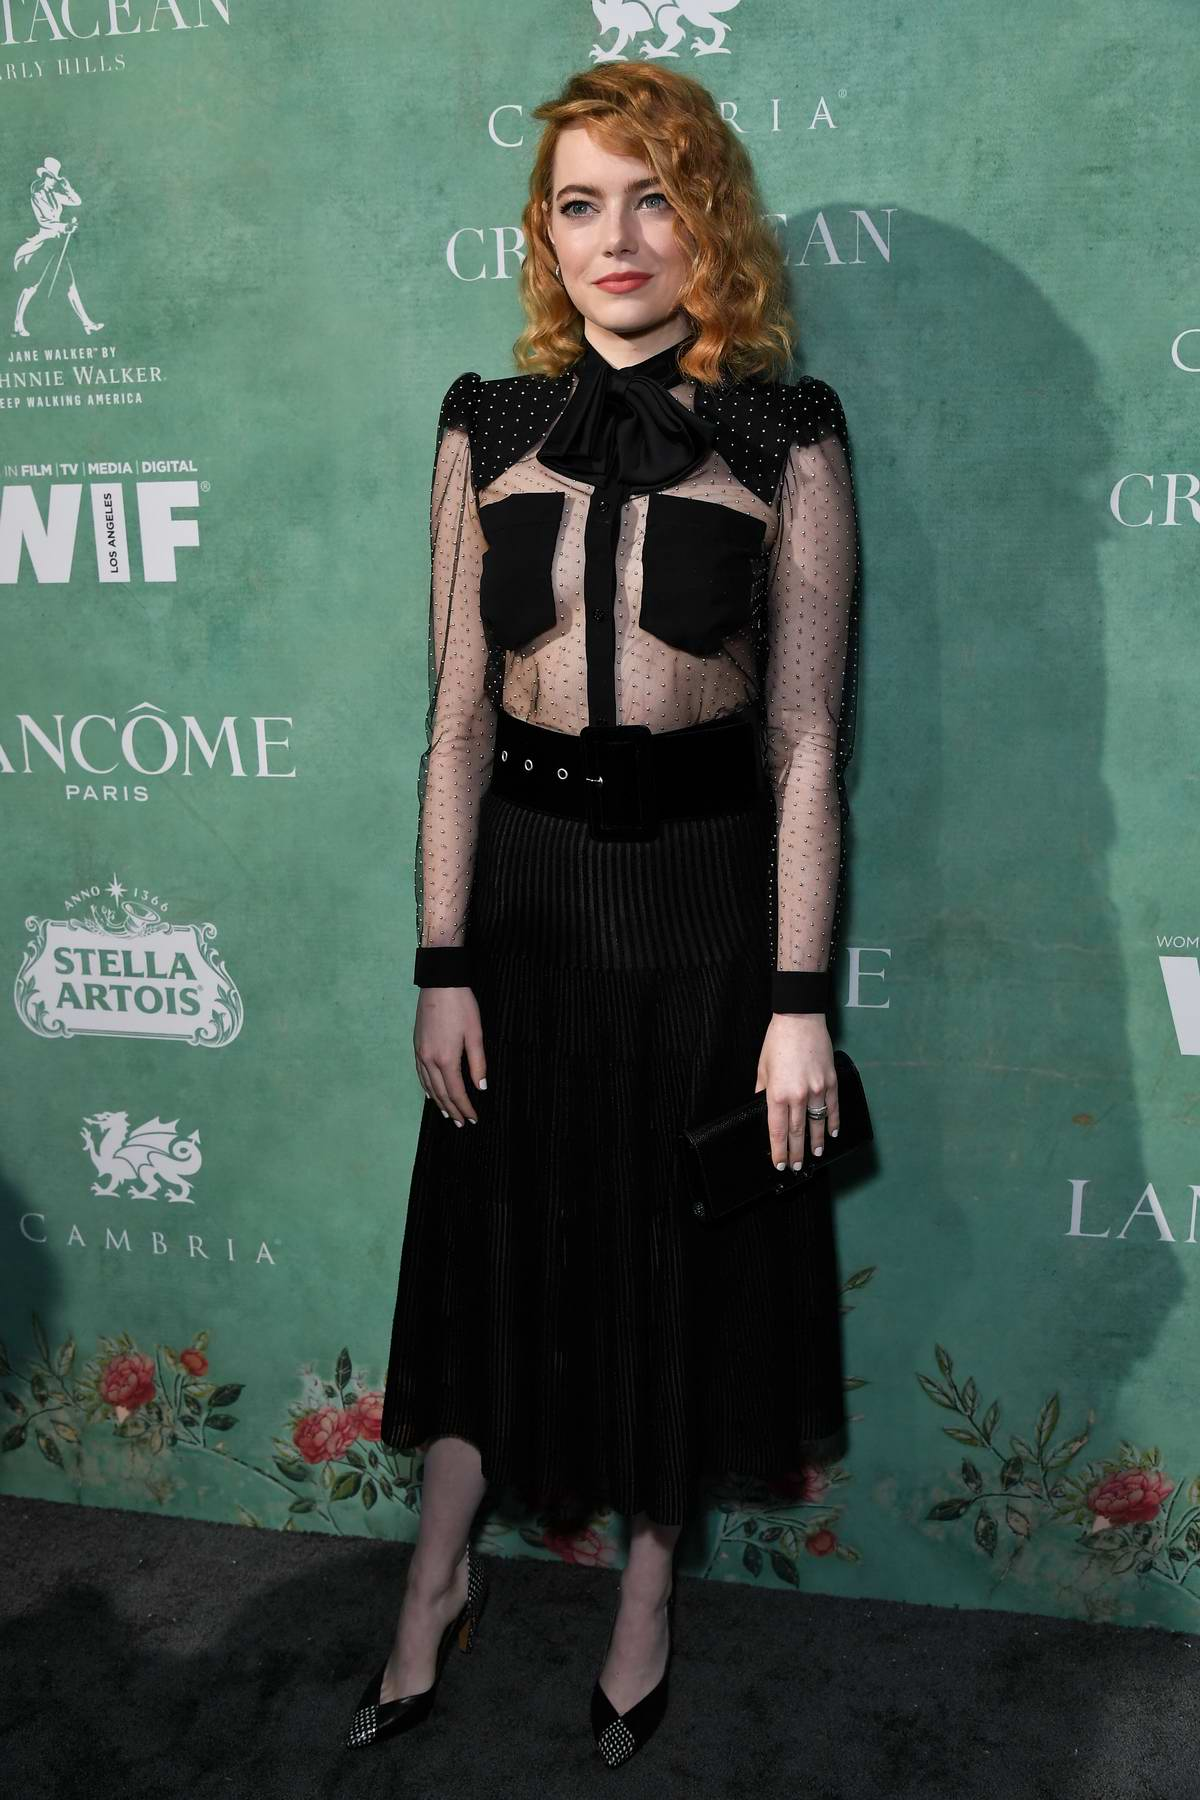 Emma Stone attends the 11th Annual Women In Film Pre-Oscar Cocktail Party at Crustacean in Beverly Hills, Los Angeles